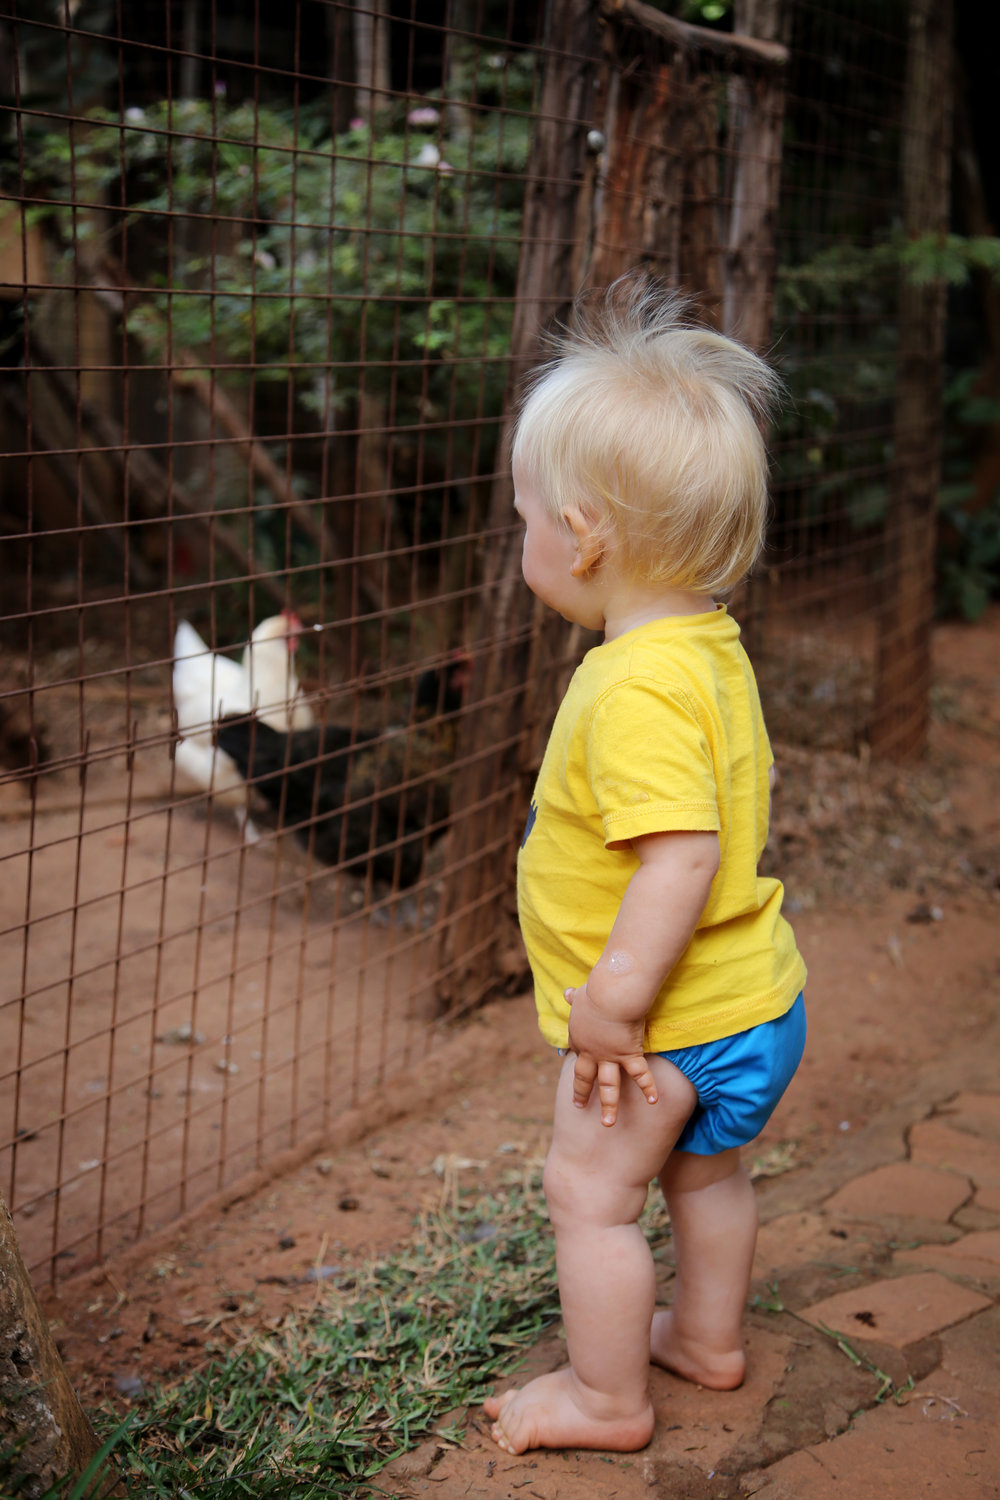 7.14.16 Checking out the chickens.JPG